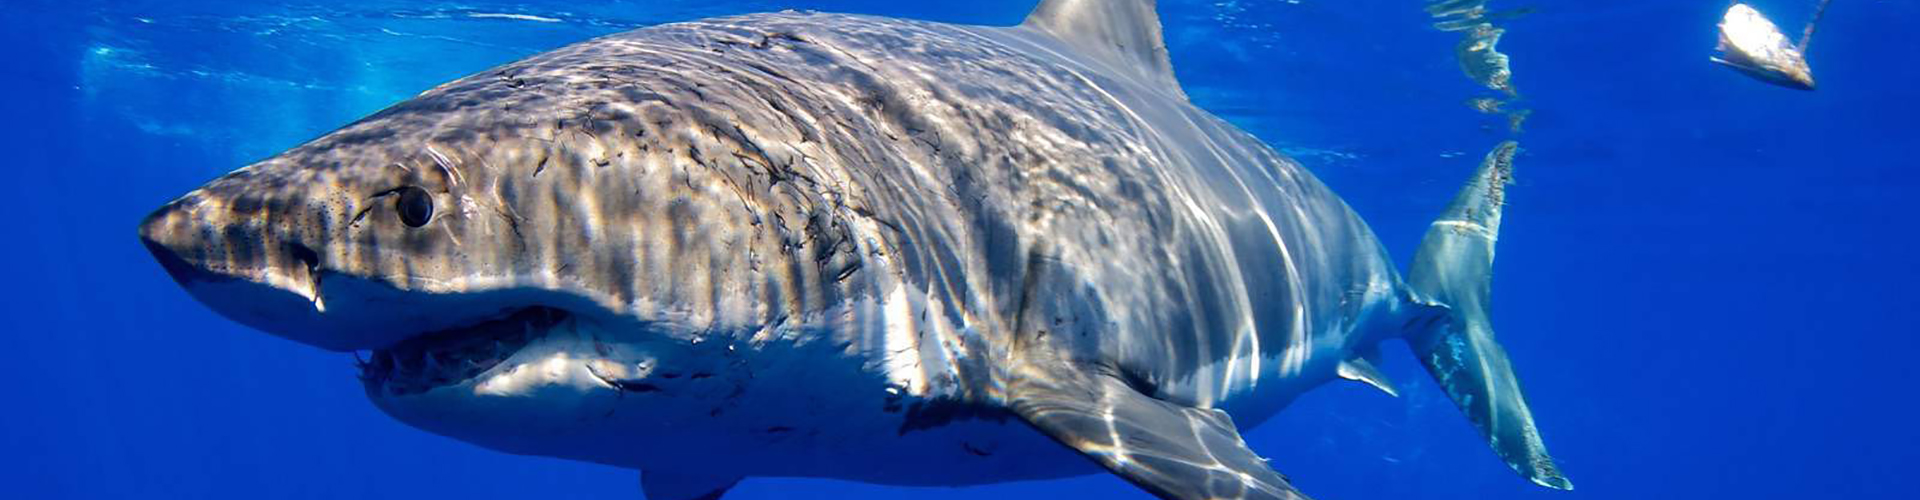 Join us in Guadalupe for a Great White Shark Adventure! August 1 – 5, 2020